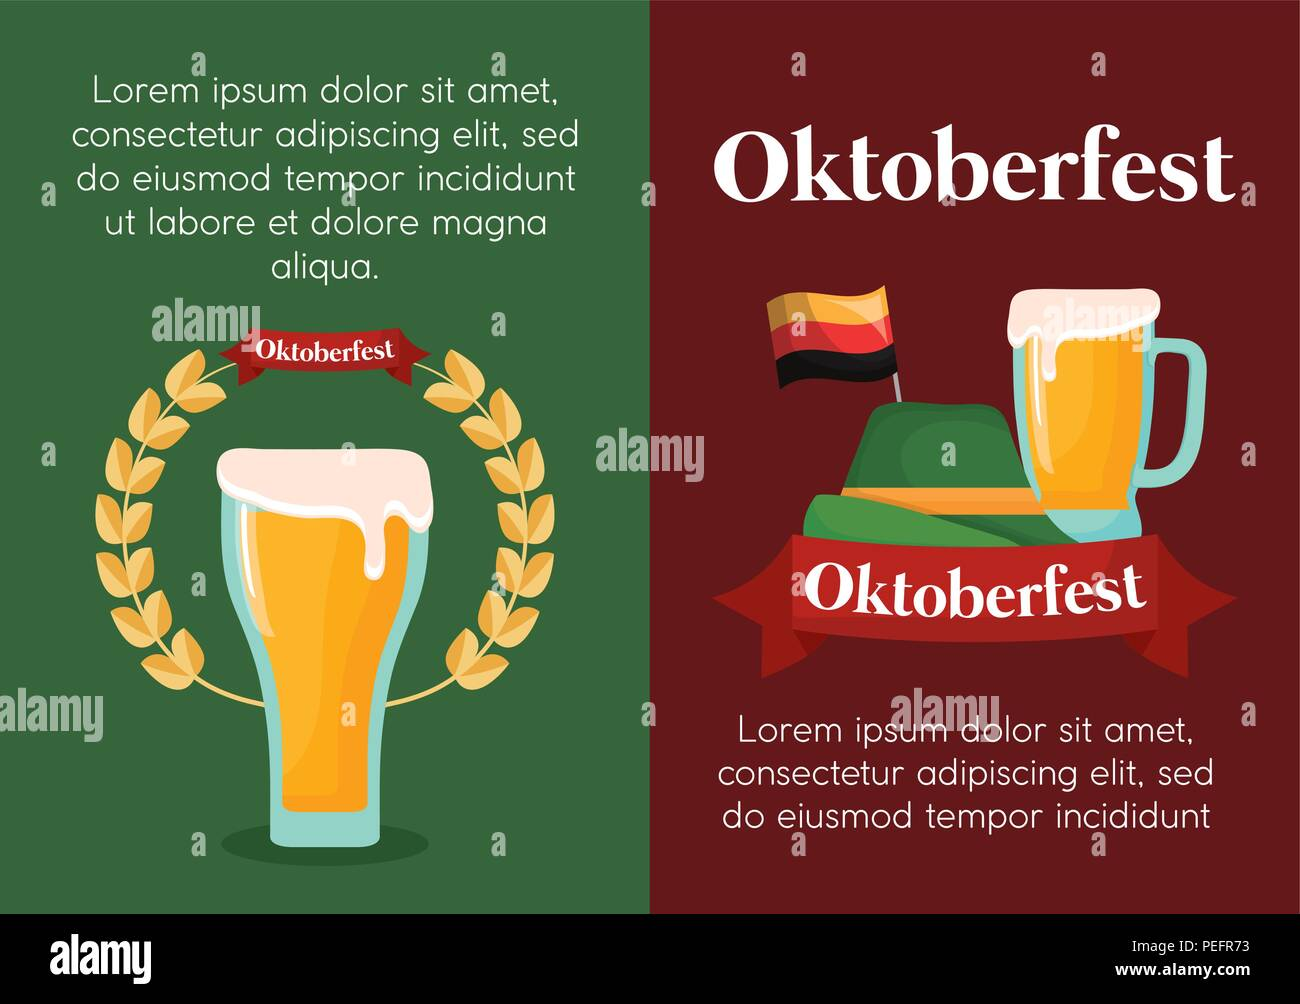 infographic of oktoberfest concept with alpine hat and beers icon, colorful design. vector illustration - Stock Image